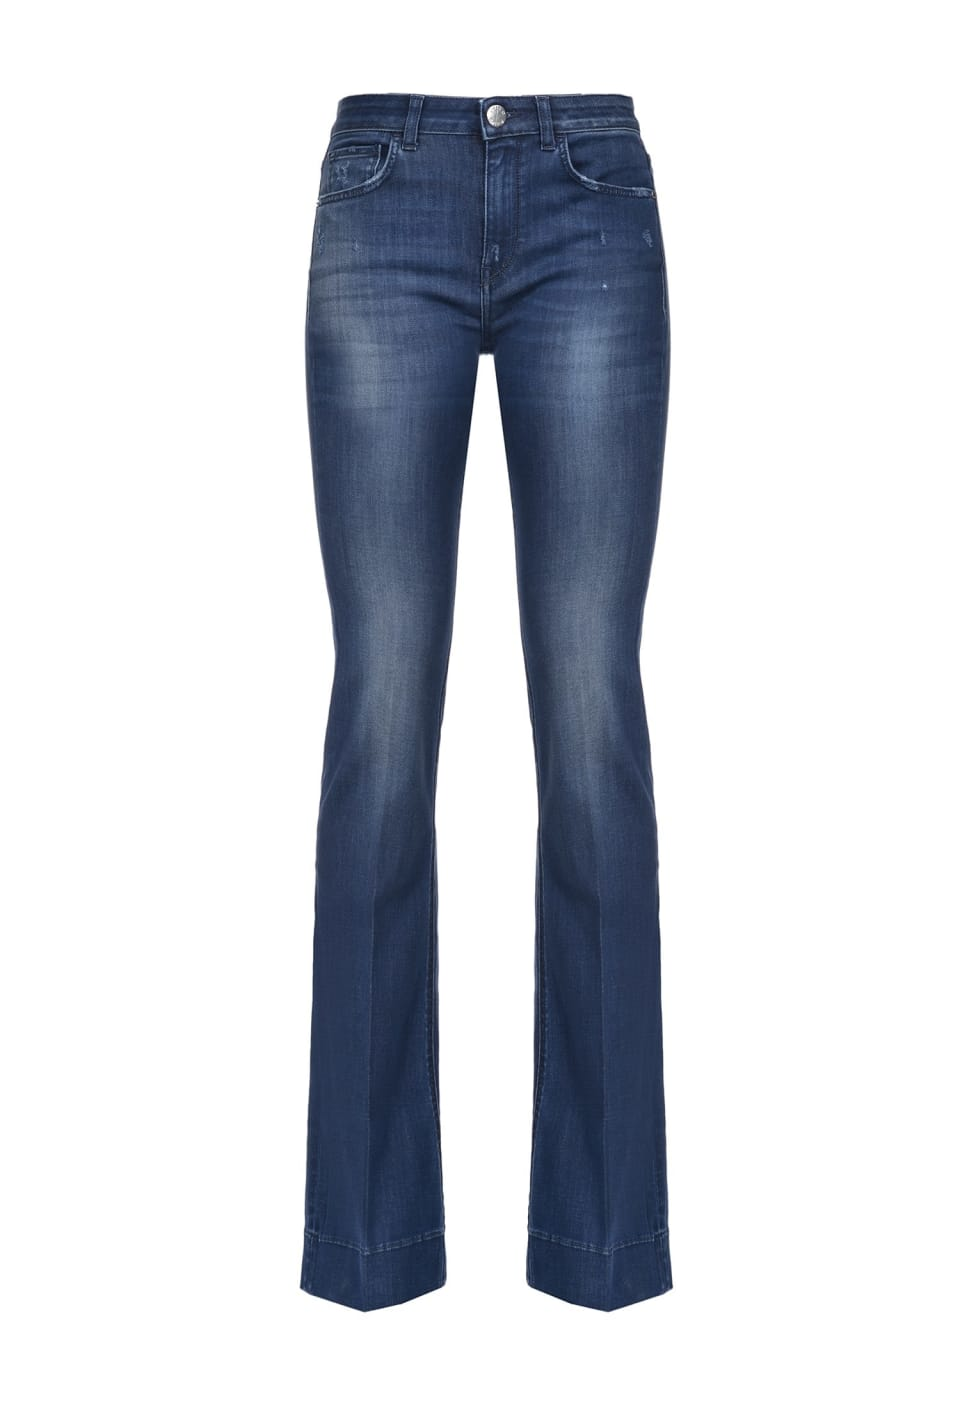 Jeans flare in denim blue power stretch